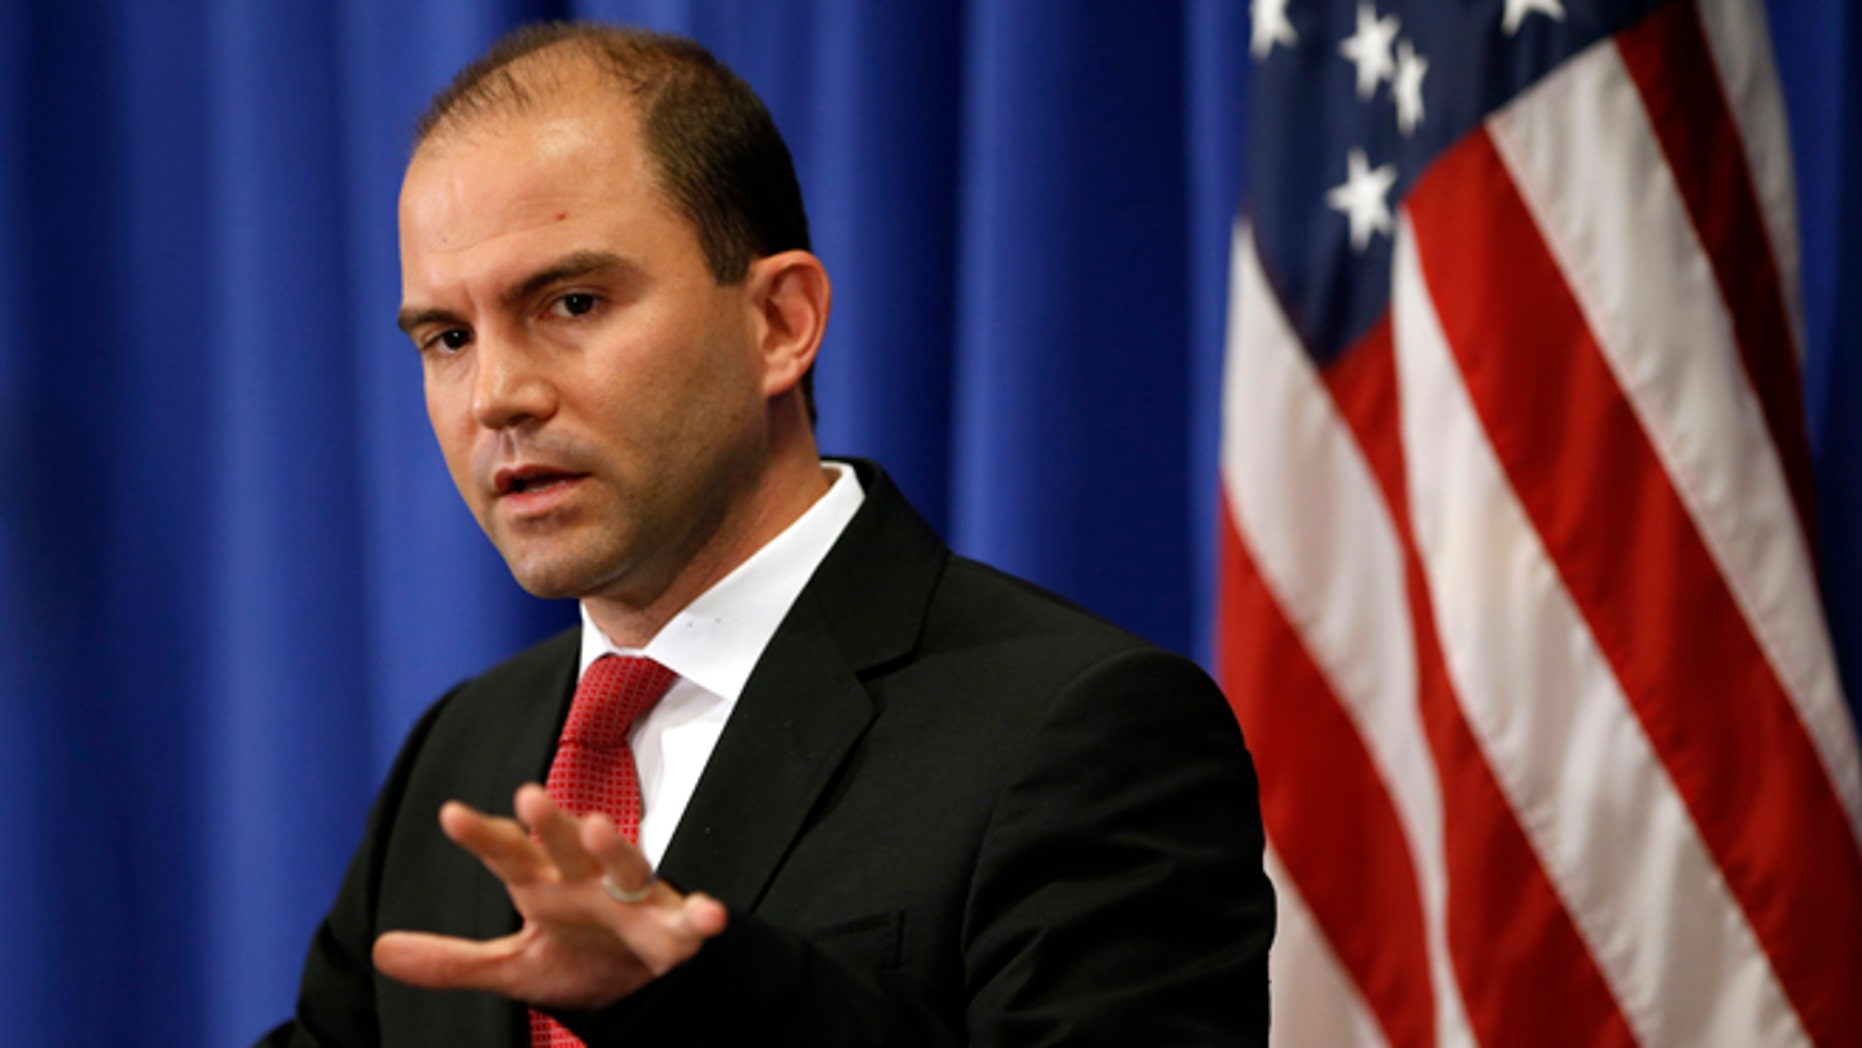 In this August 22, 2014 photo, Deputy U.S. national security adviser Ben Rhodes speaks during a press briefing on Martha's Vineyard, Massachusetts.